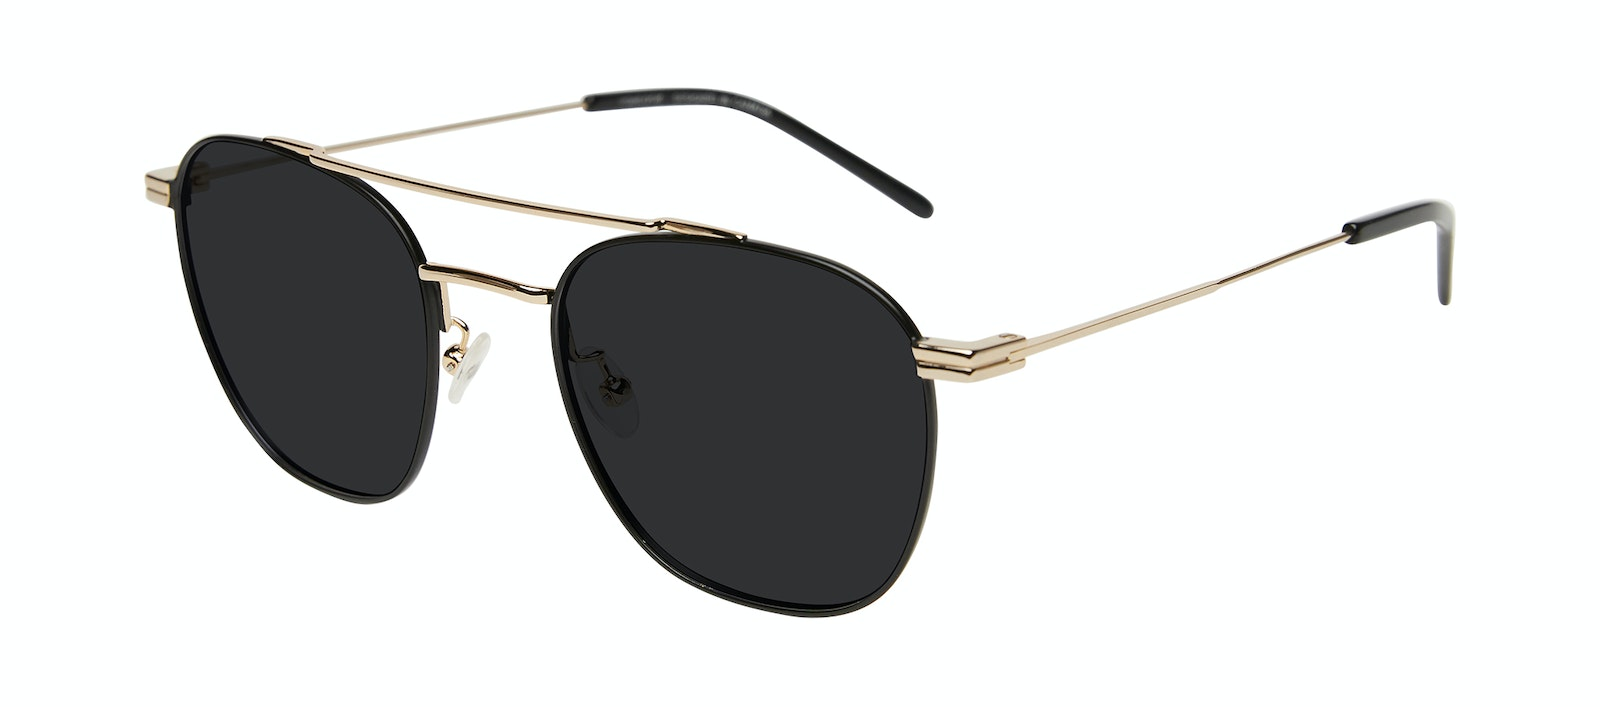 Affordable Fashion Glasses Aviator Sunglasses Men Miami Deep Gold Tilt